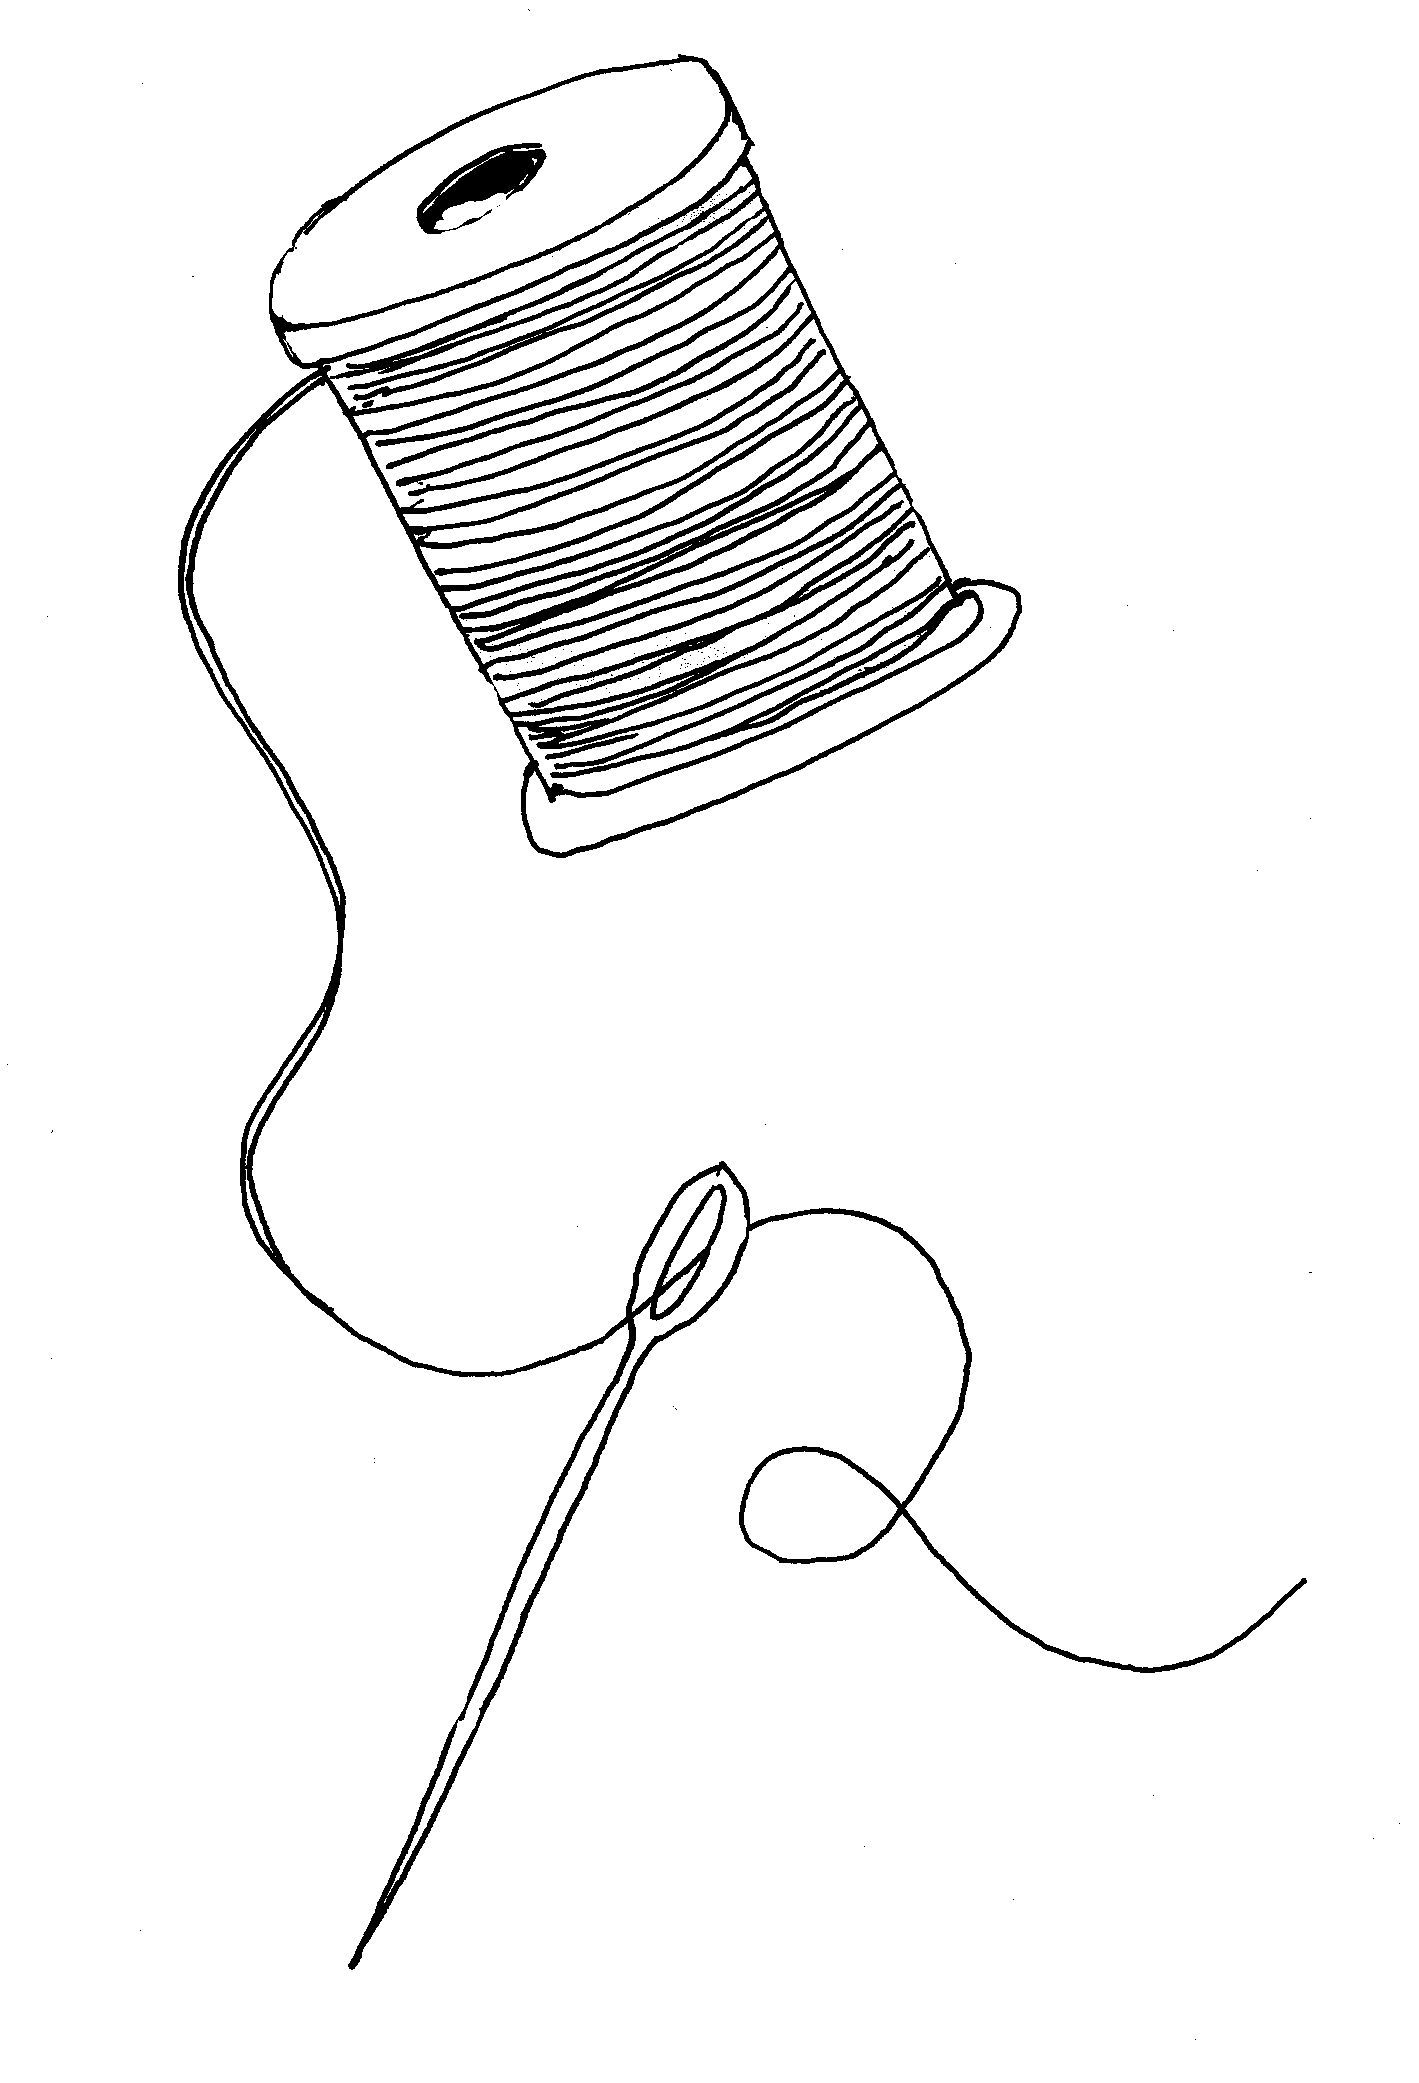 Cartoon Sewing Needle And Thread - Clipart library